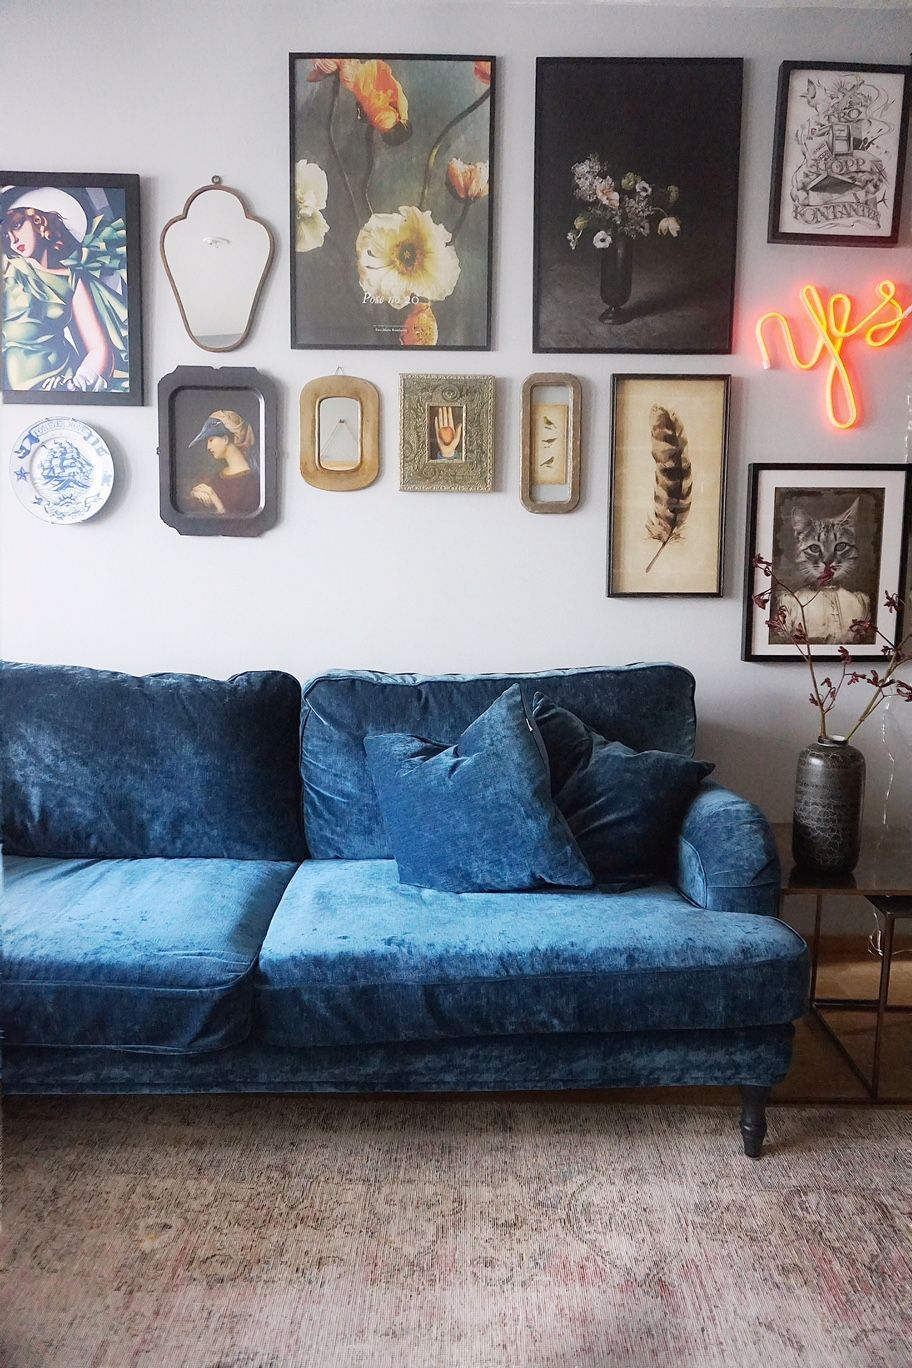 Ikea Köln Sofa Imm Köln Interior Design Trends Set To Be Huge In 2018 Boho